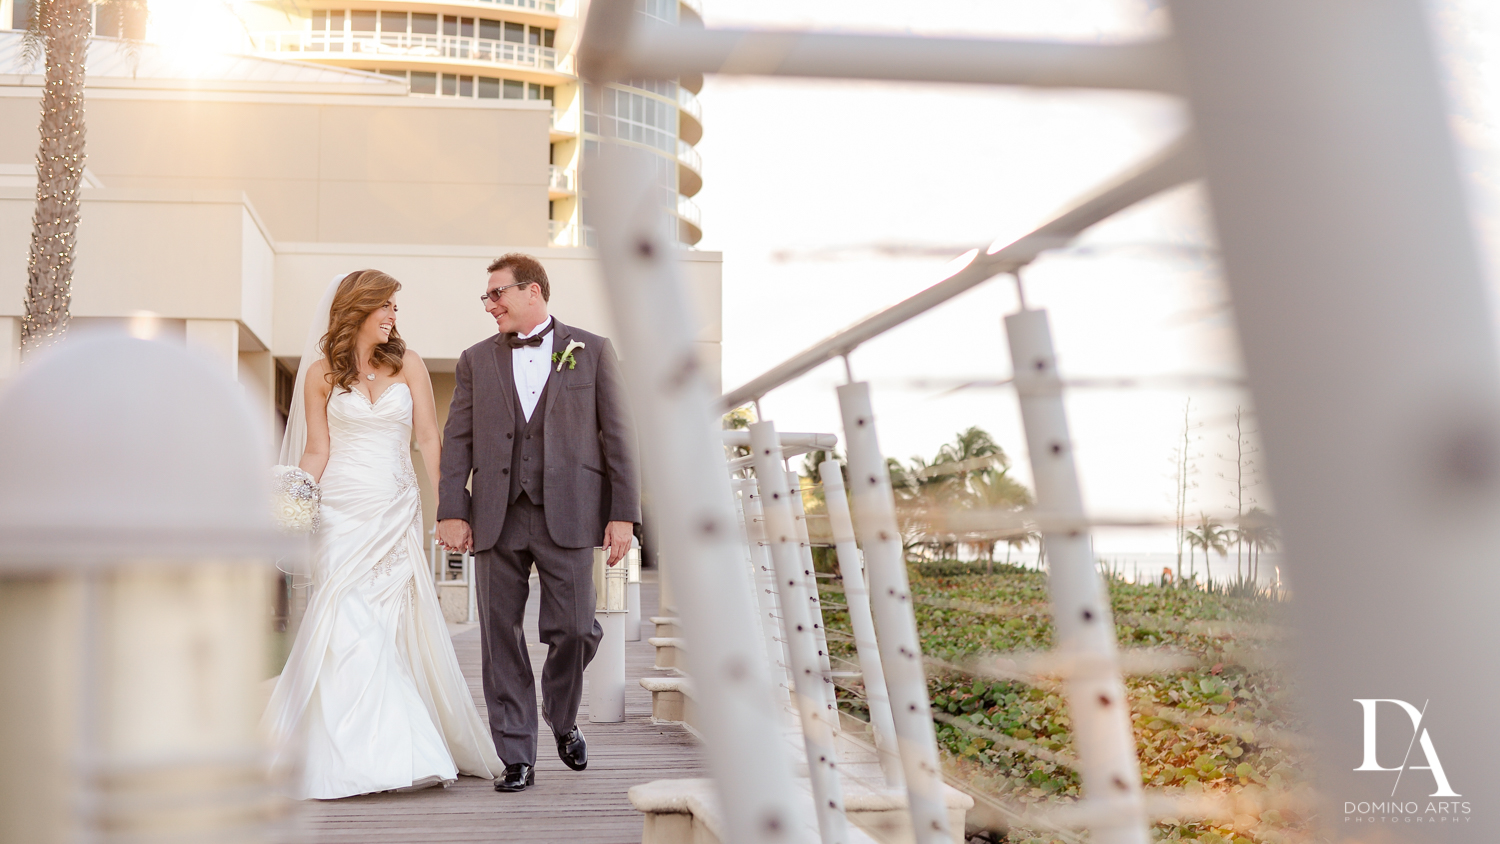 Cute couple Wedding Photography in South Florida at Fort Lauderdale Marriott Harbor Beach Resort & Spa by Domino Arts Photography